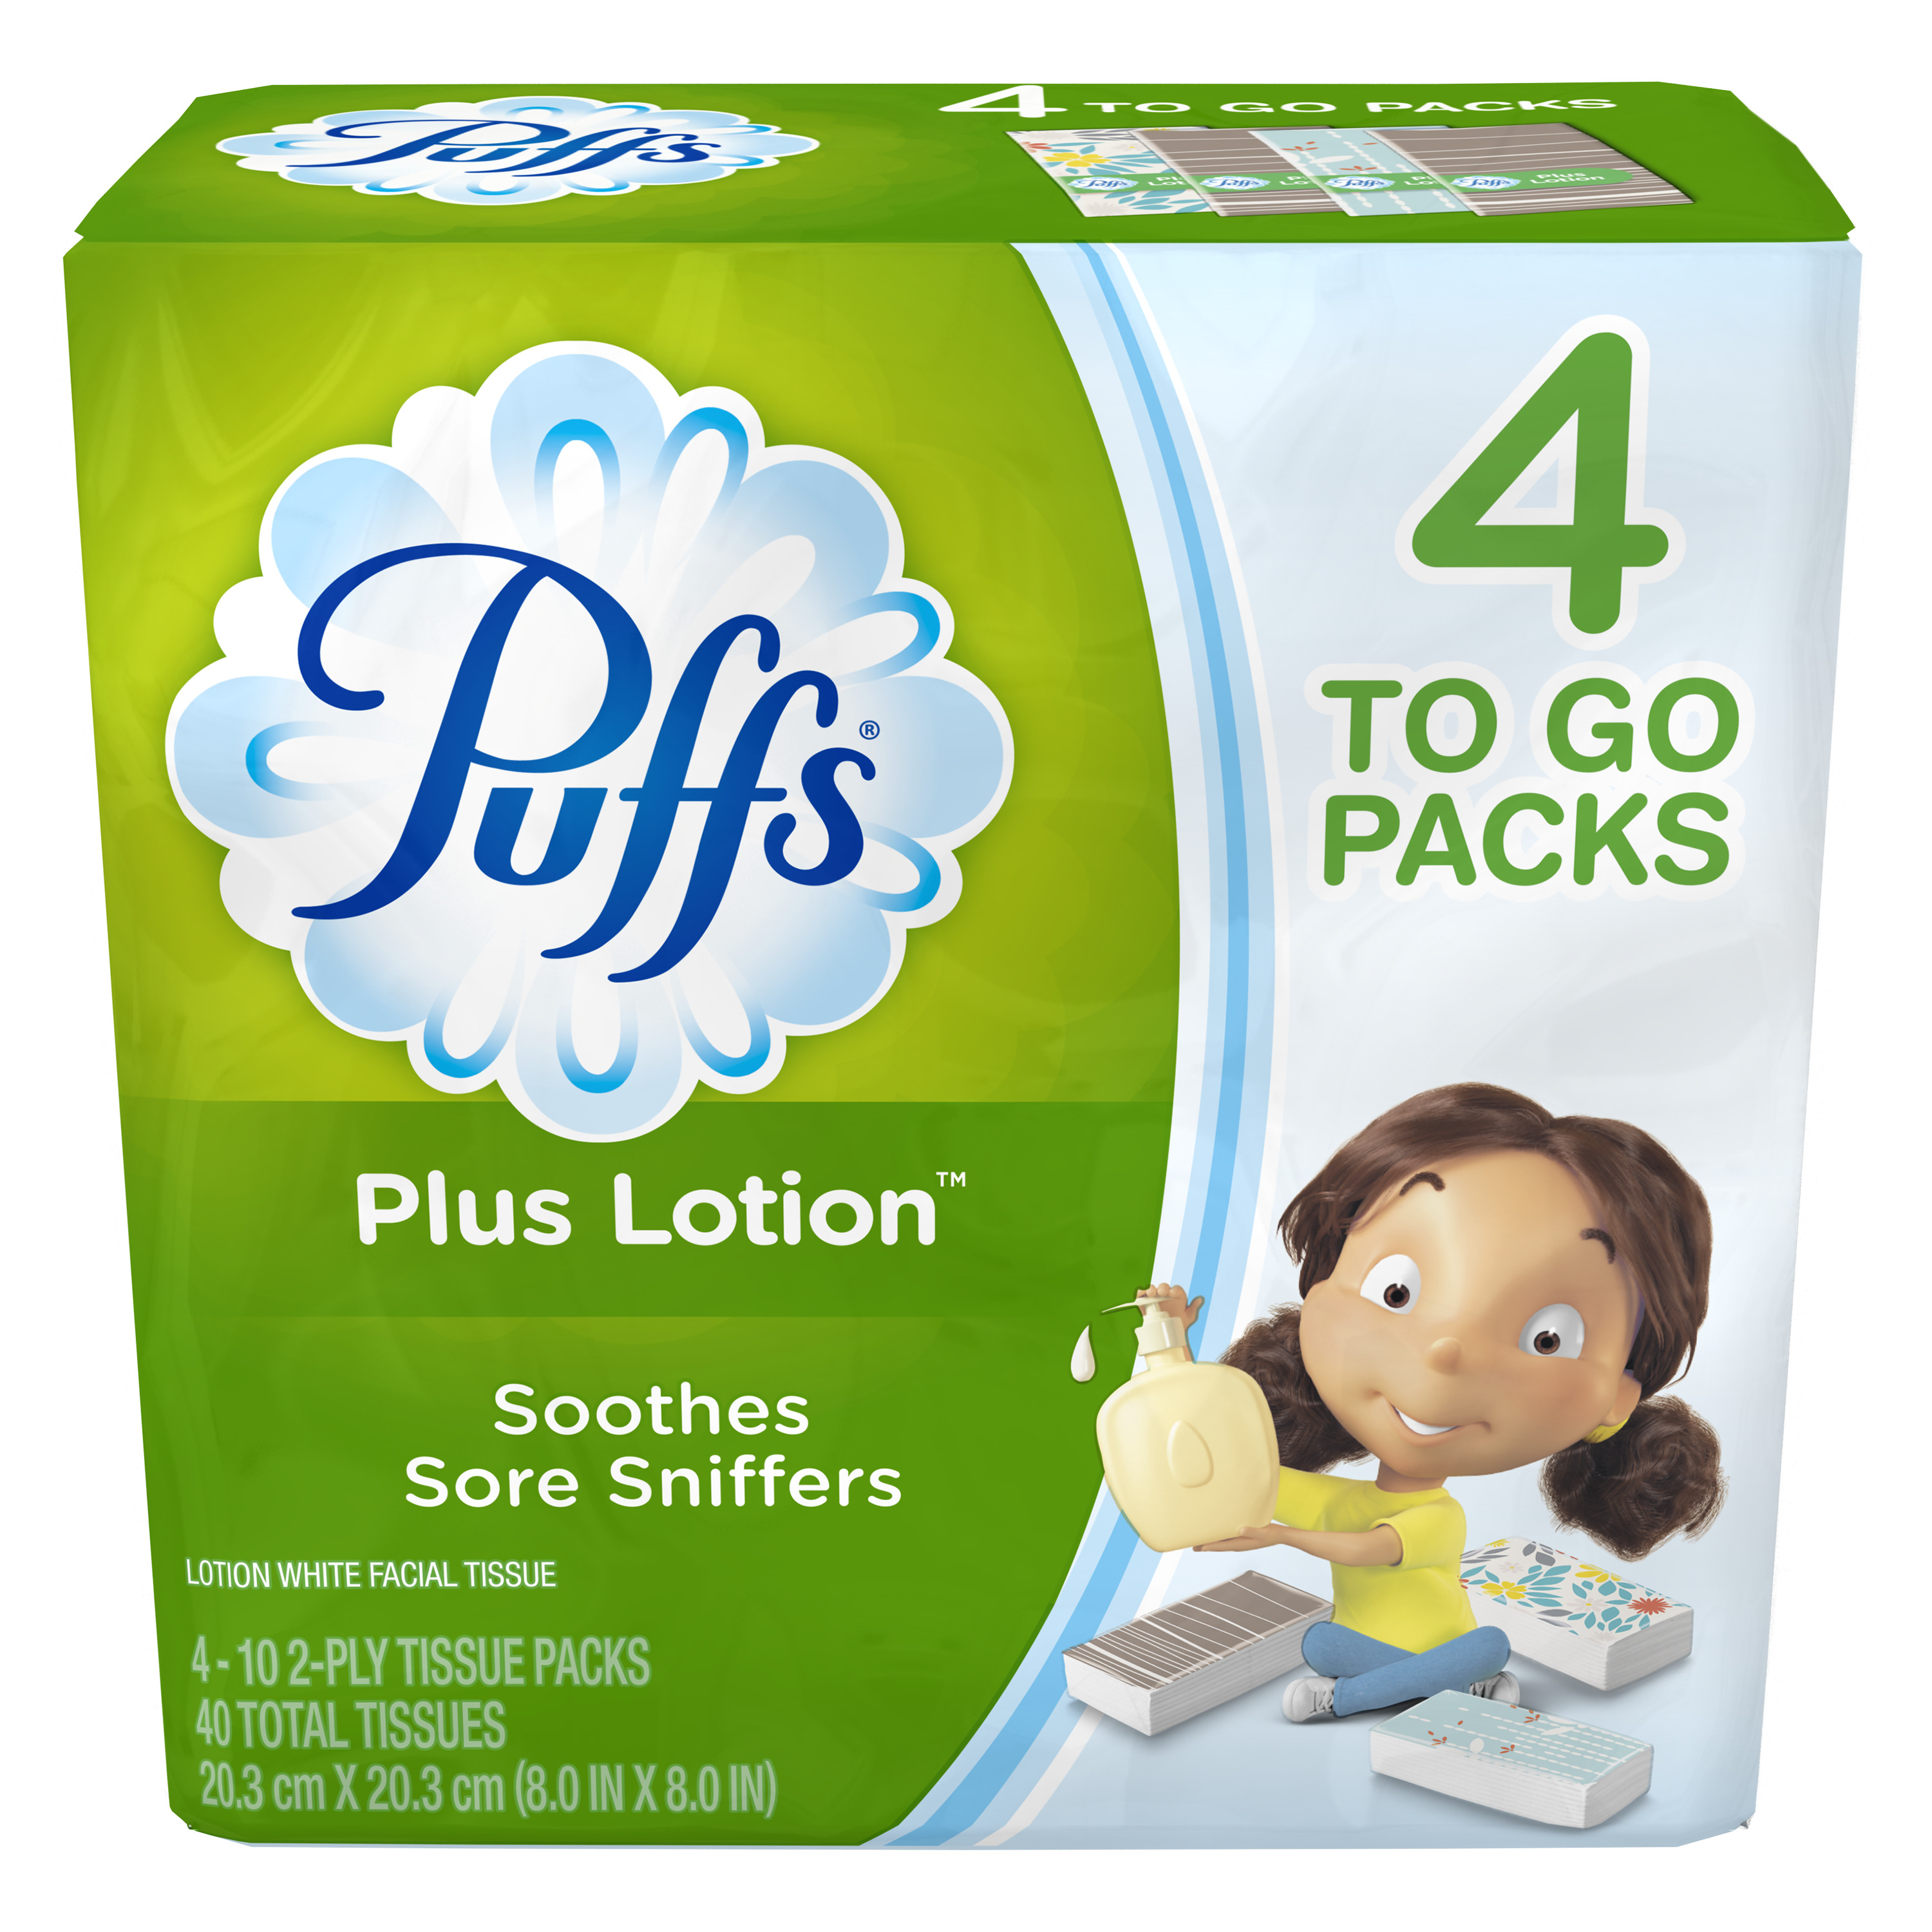 Puffs Plus Lotion Facial Tissues, 4 To Go Packs, 10 Tissues per Pack